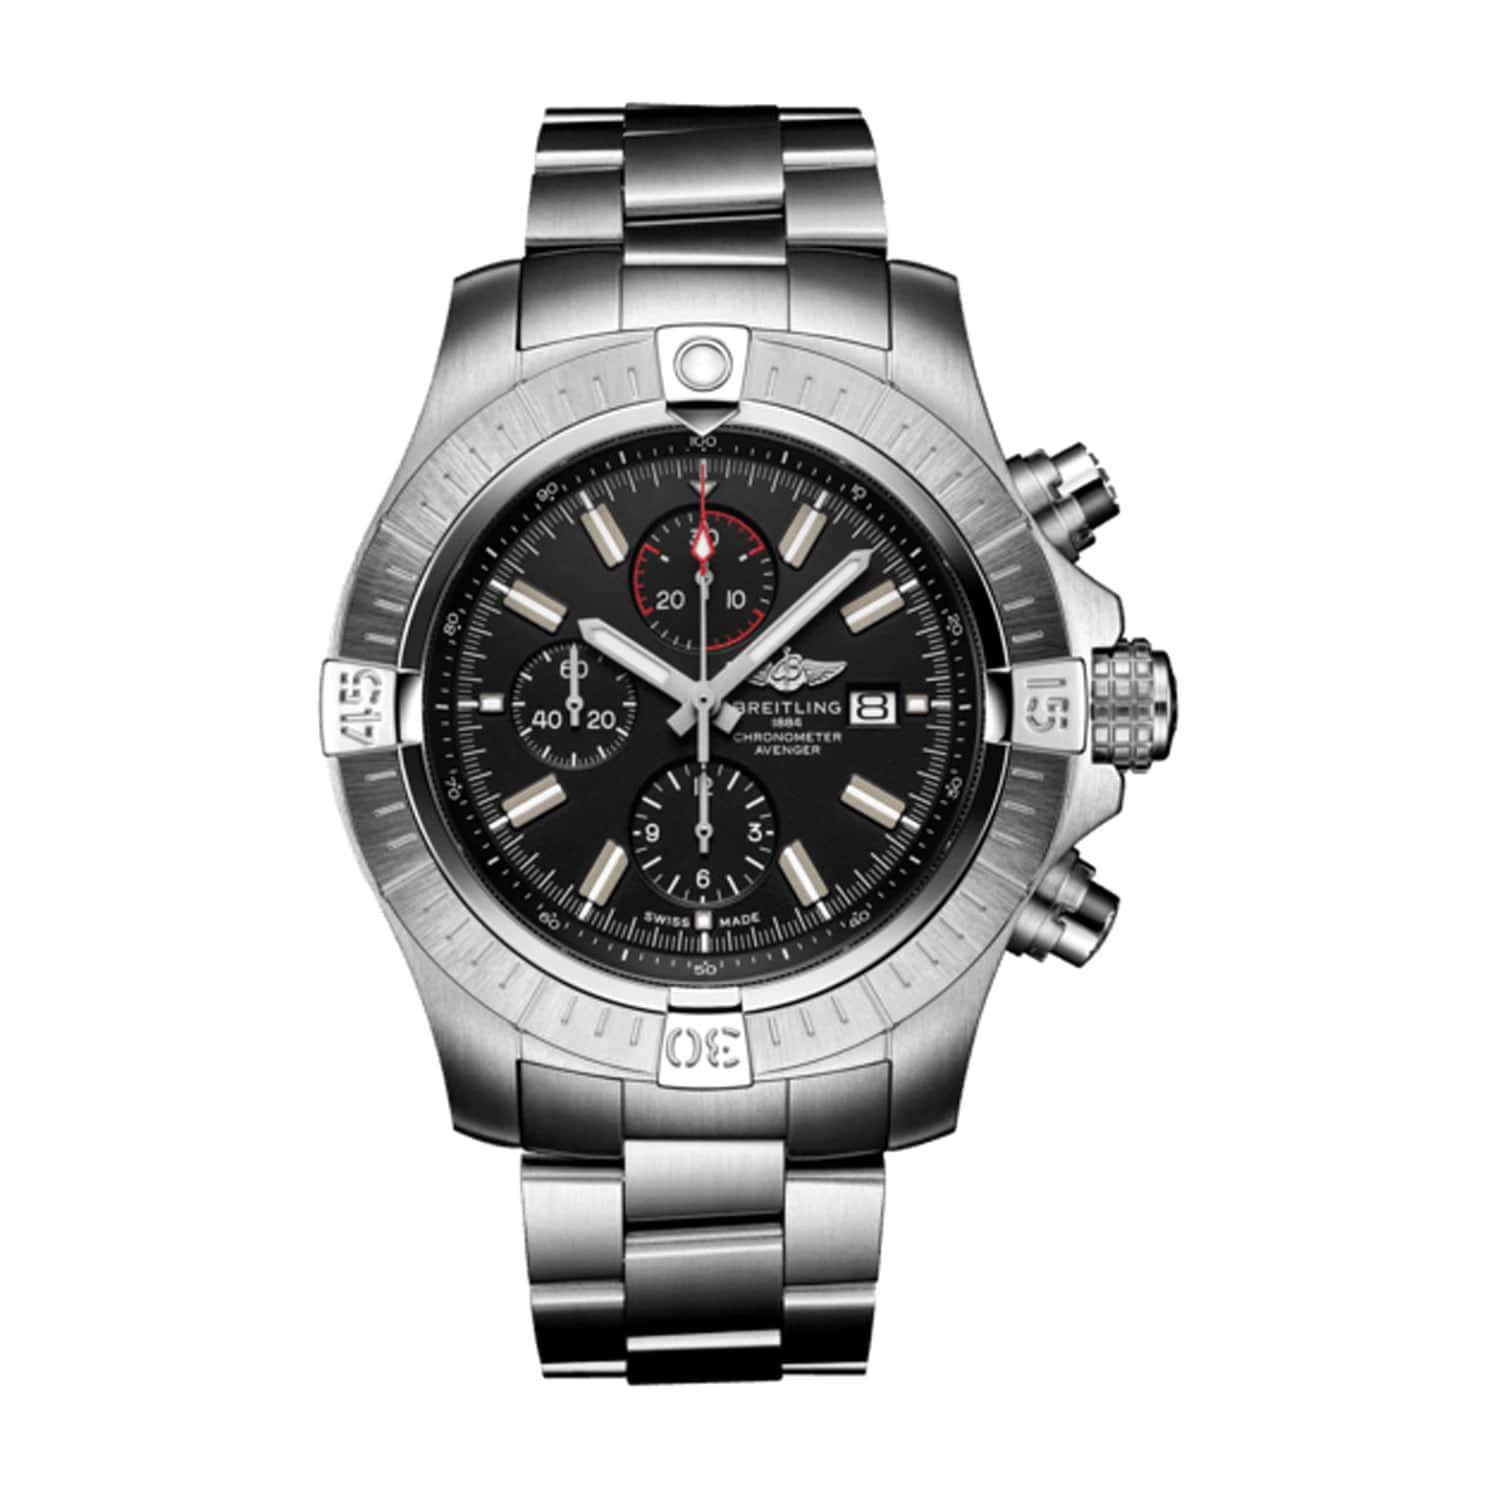 Breitling Super Avenger 48mm Chronograph Black Dial Bracelet Watch